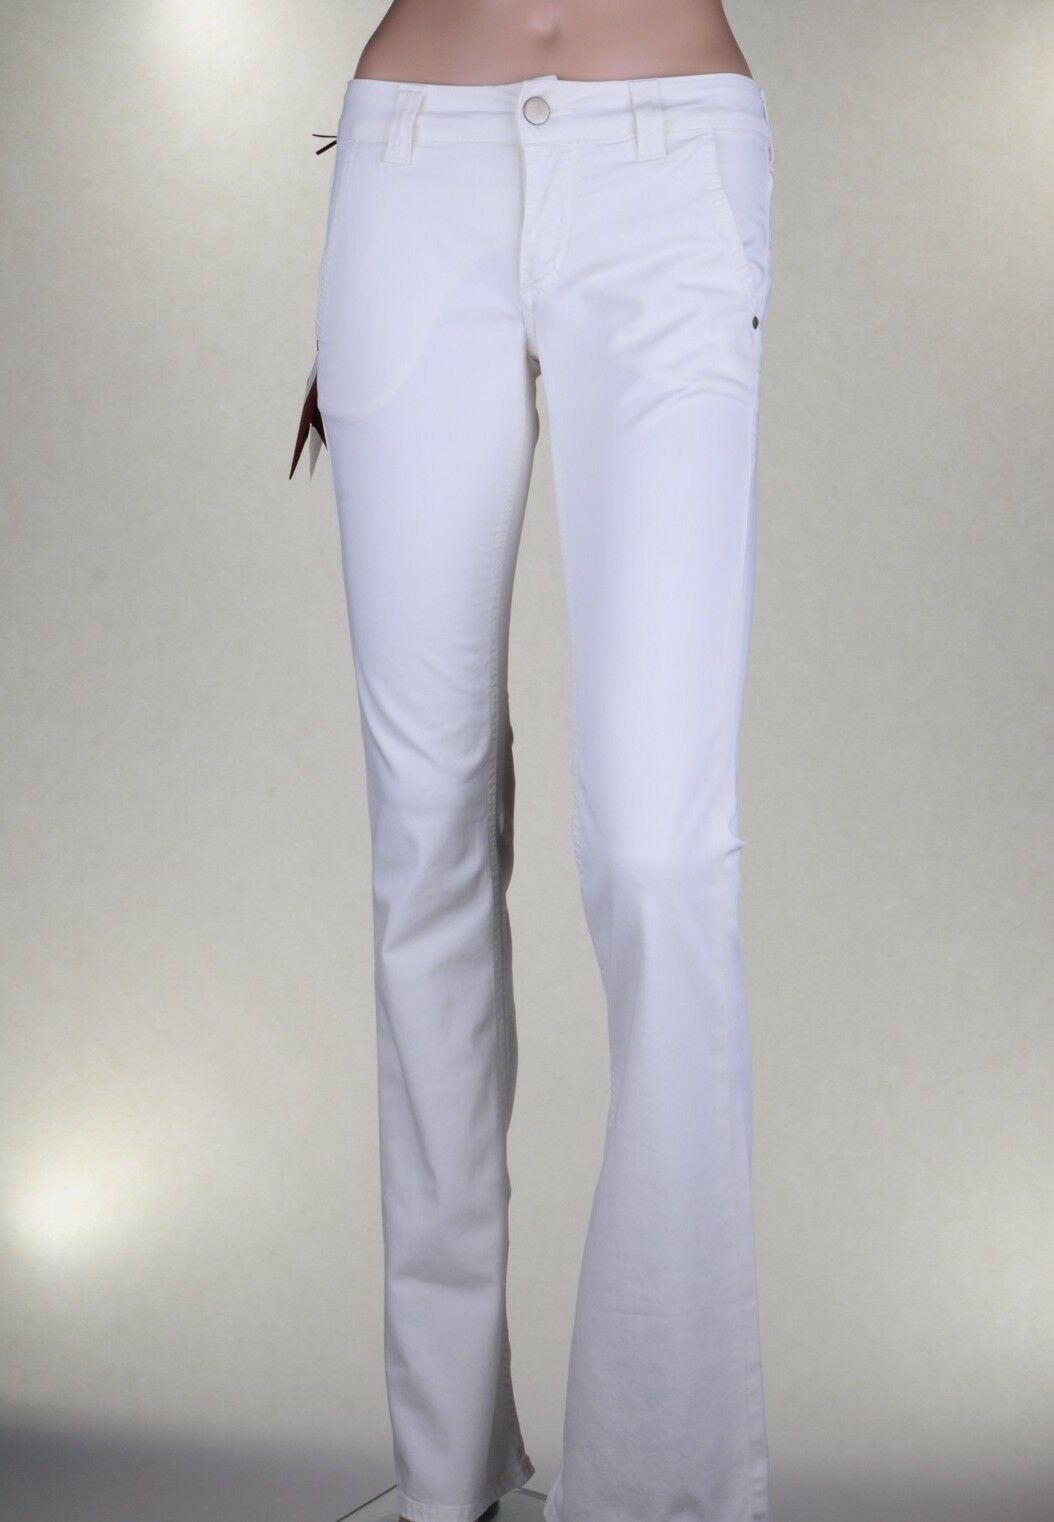 Dondup  -  Pants - female - White - 156909A183840